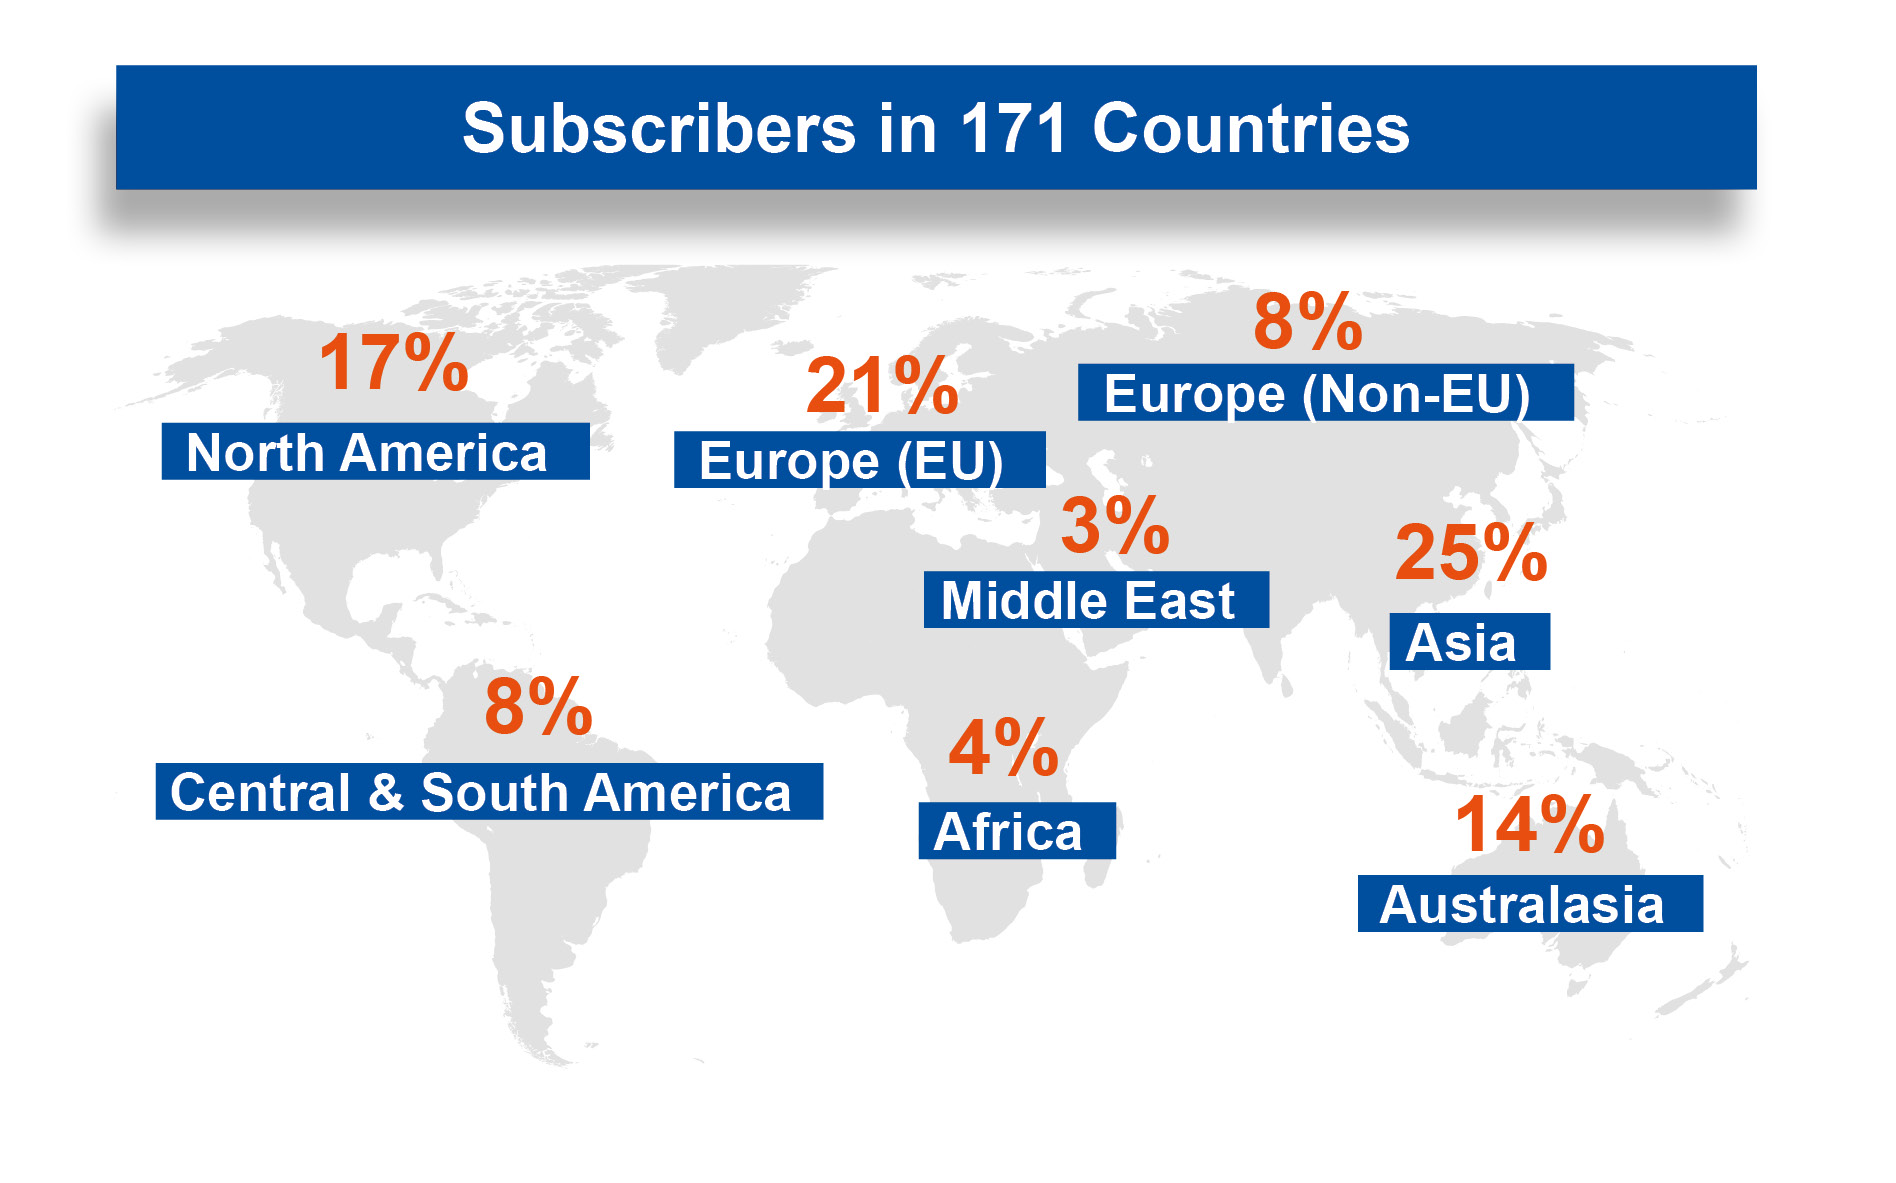 subscribers-in-countries-171